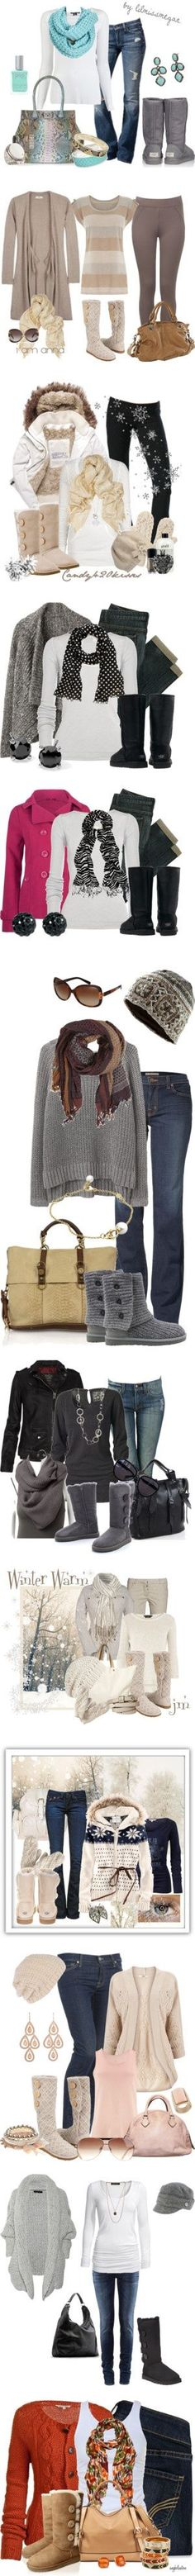 #womanshoes #fashion Ugg Boots Sale Are Here Waiting For You! Website For Ugg Boots! Super Cheap! Only $39!